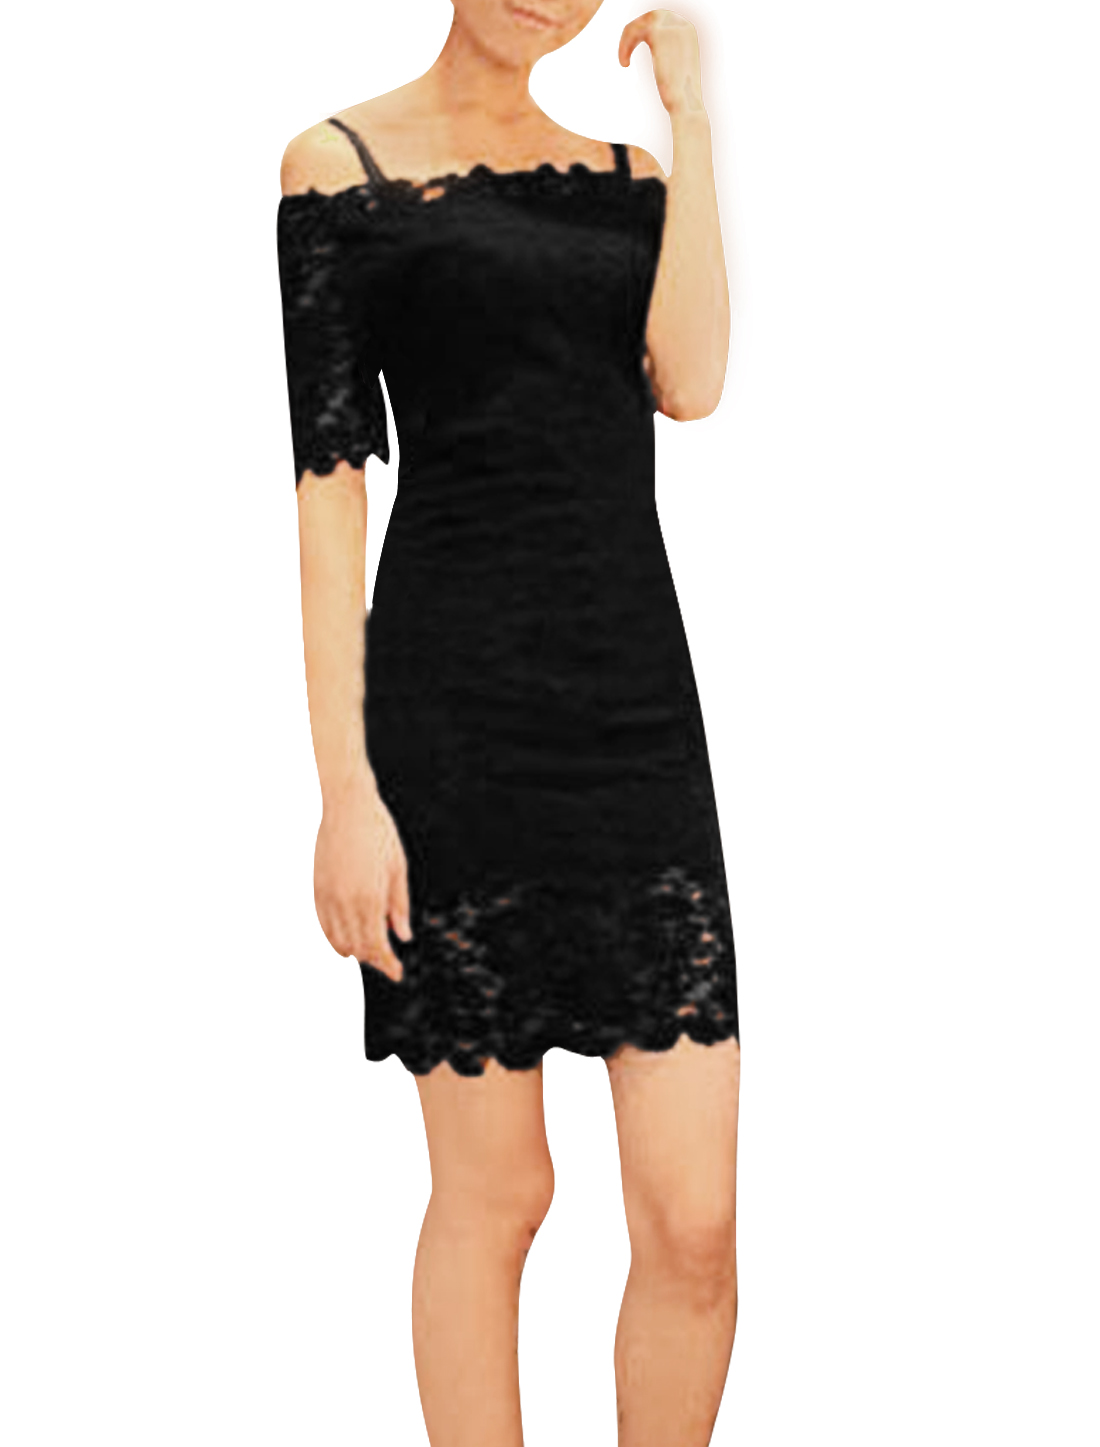 Pullover All Over Lace Covered Black Slim Fit Mini Dress for Lady M